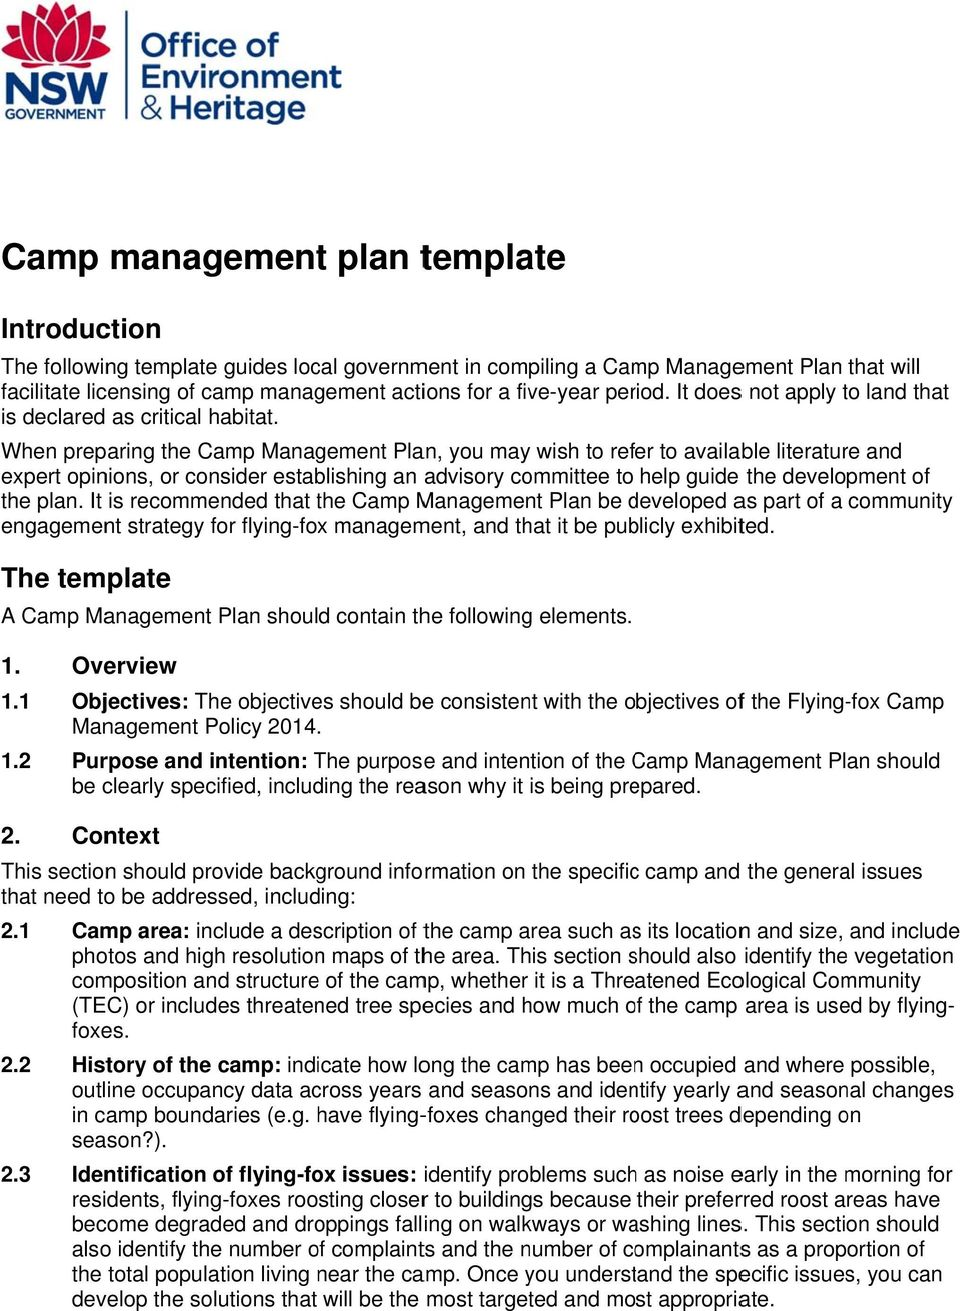 When preparing the Camp Management Plan, you may wish to refer to available literature and expert opinions, or consider establishing an advisory committee to help guide the development of the plan.